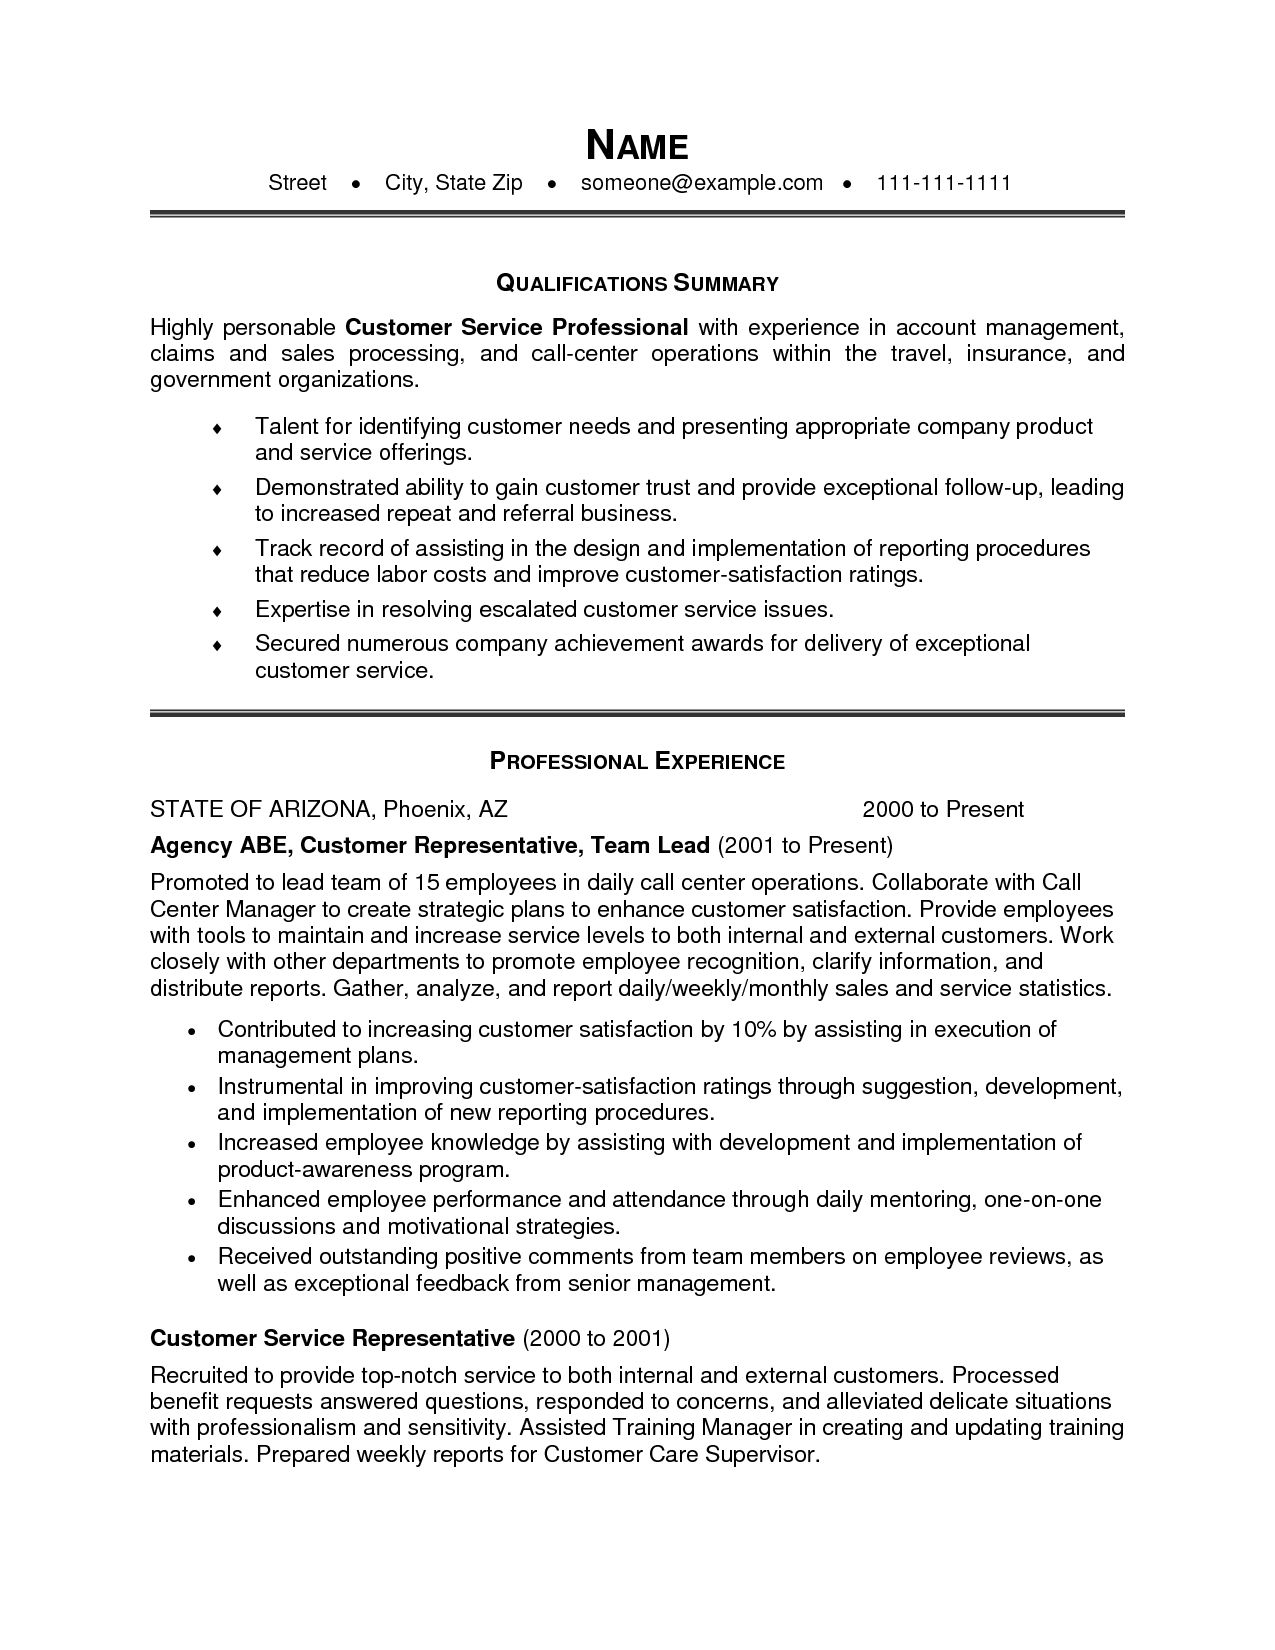 resume summary statement for students school social worker sewing skills acknowledgement Resume Resume Summary Statement For Students